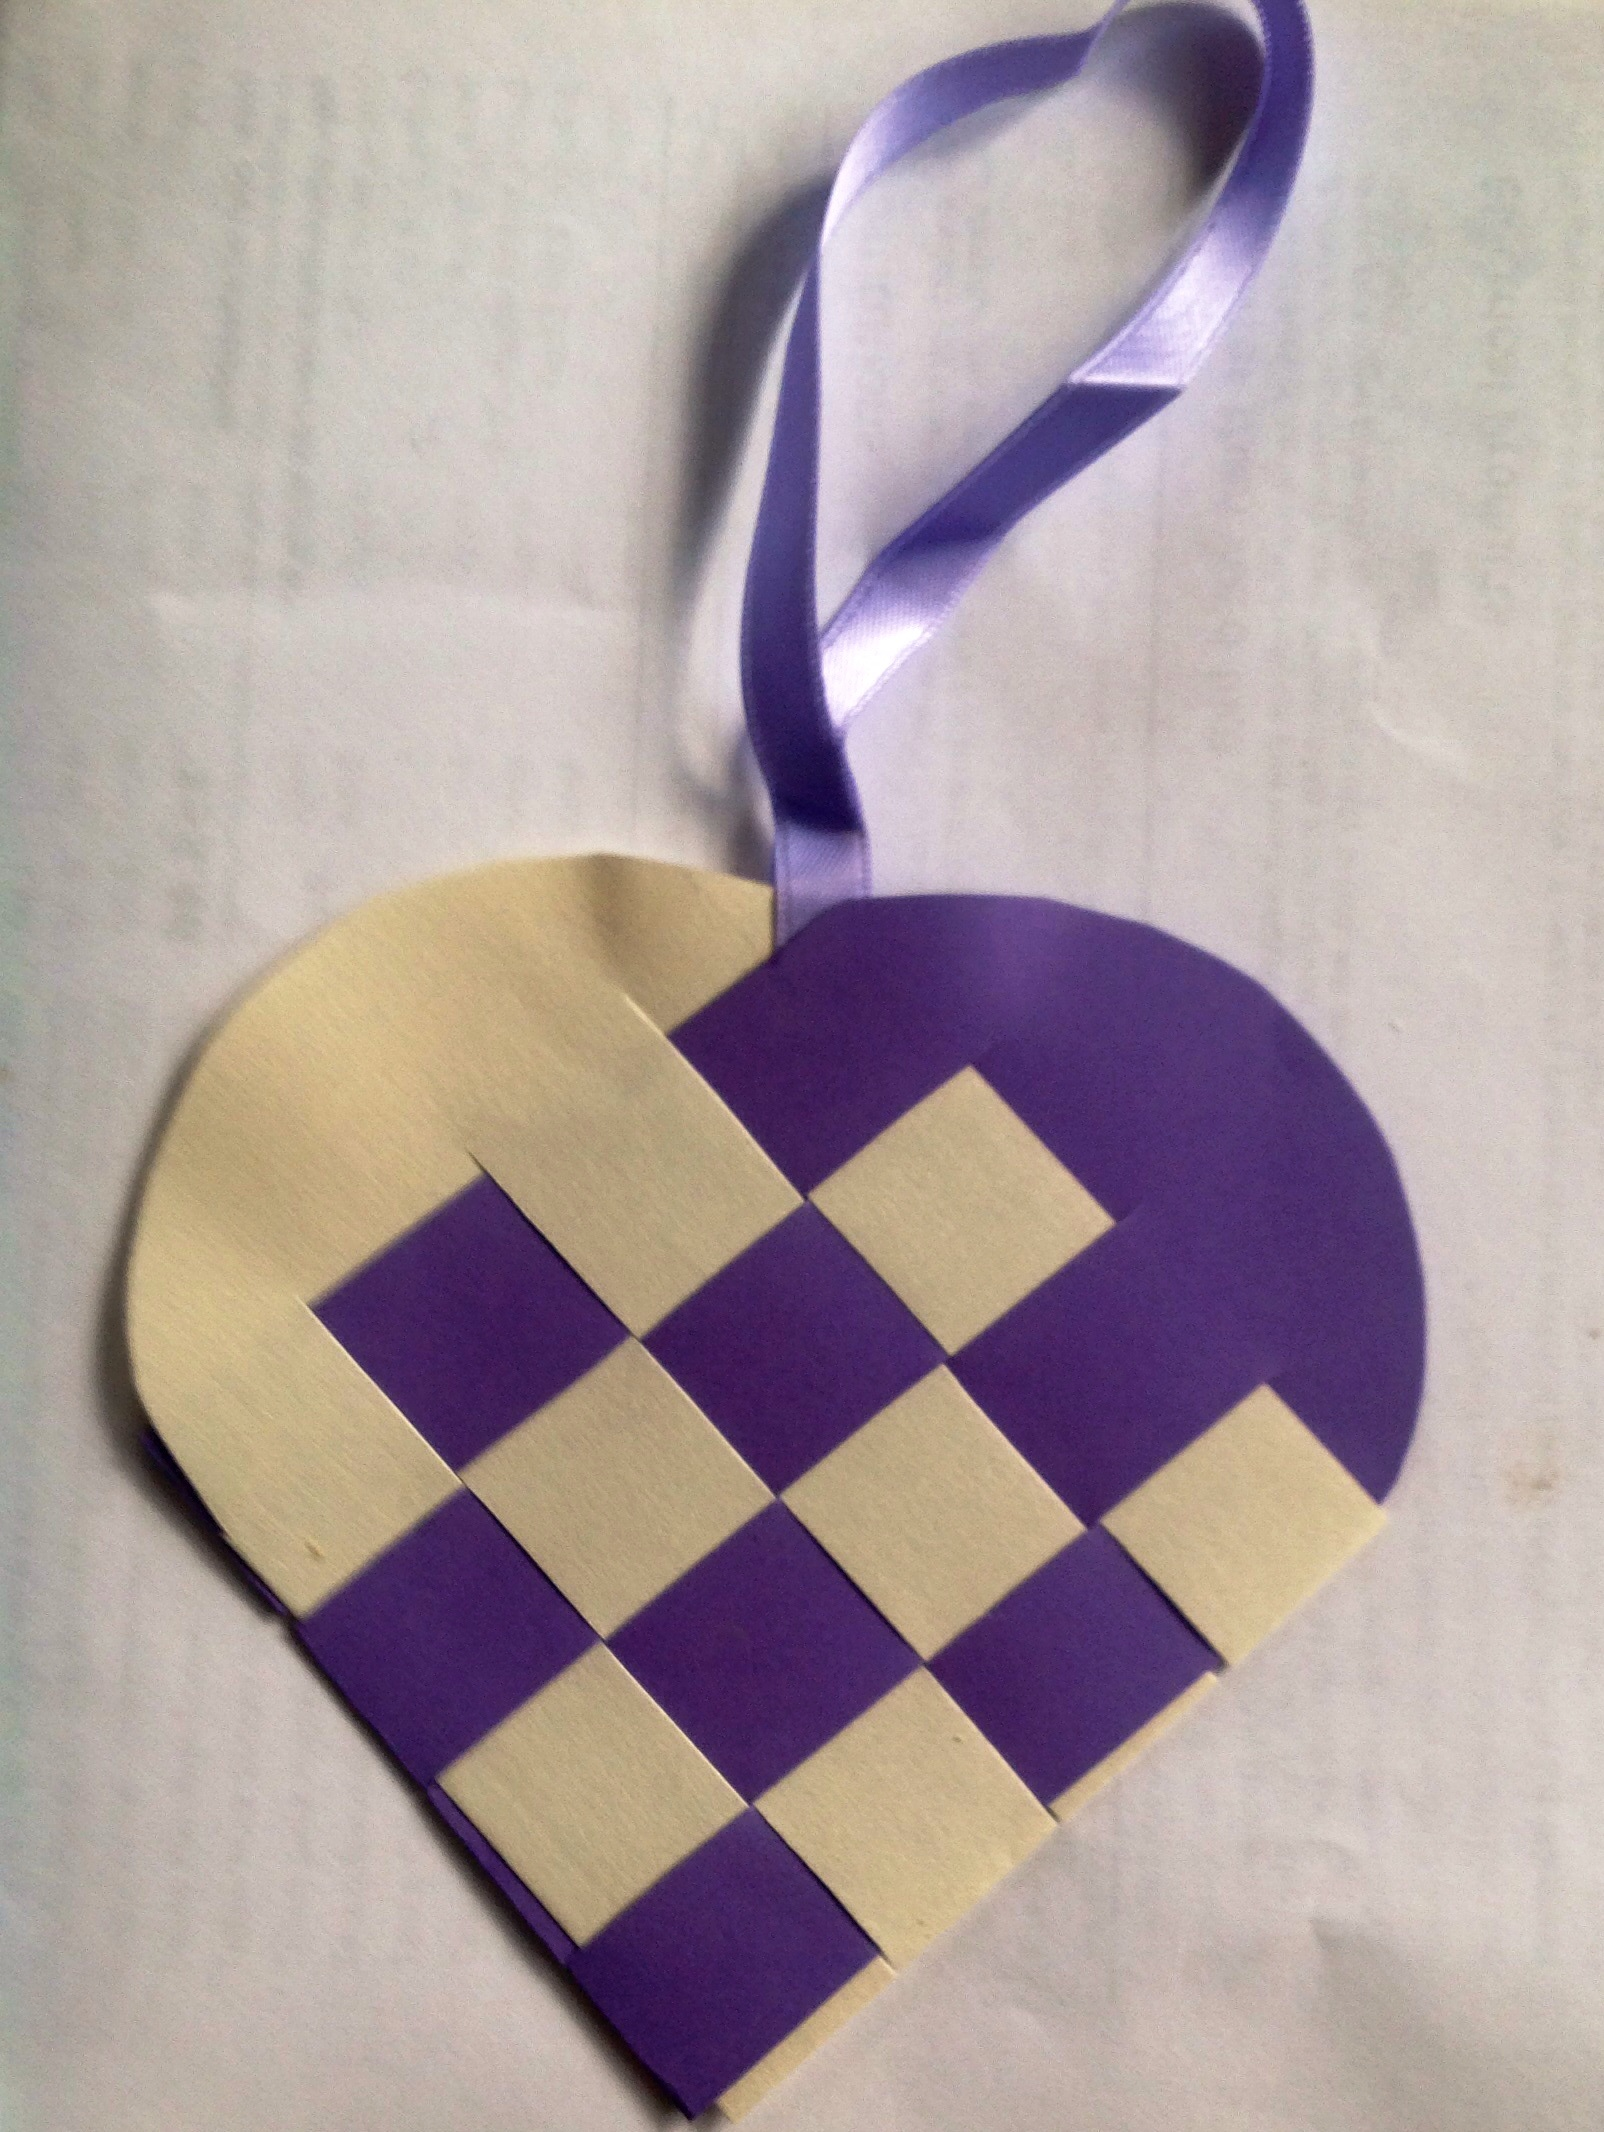 Purple and cream paper cut and plaited into a heart-shaped container with a thin purple ribbon handle to hang it up with; a traditional Danish tree decoration.